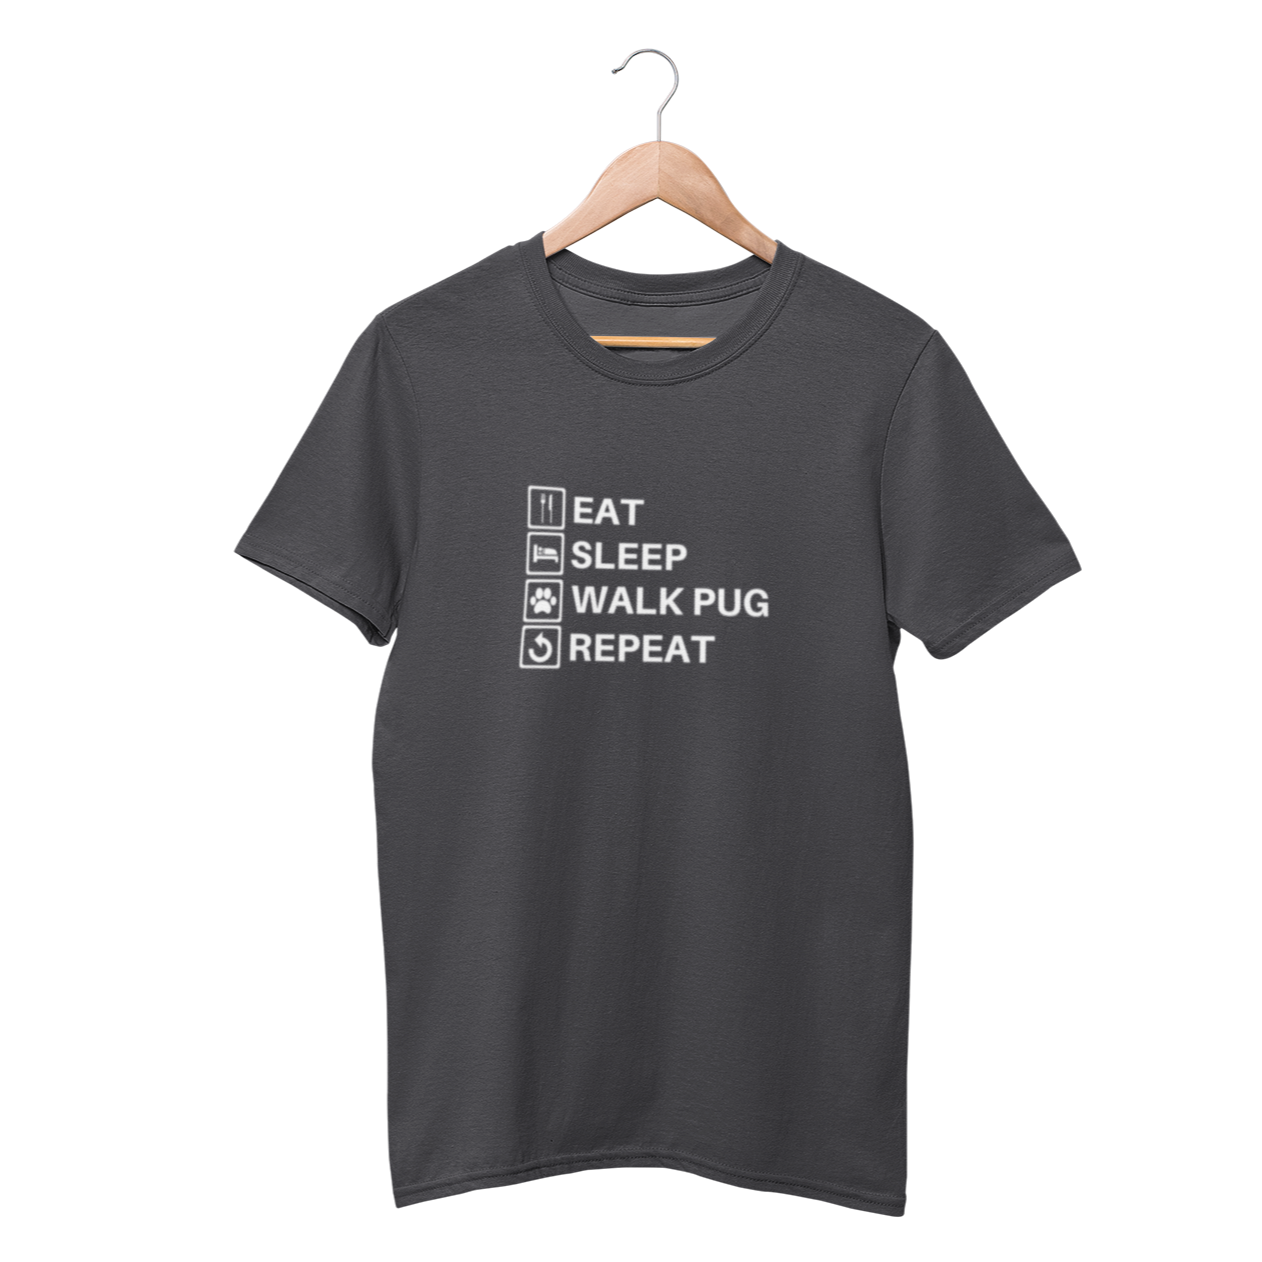 Eat, Sleep, Walk Pug & Repeat Shirt - Funny Labrador Cute Shirt Labradors Labs